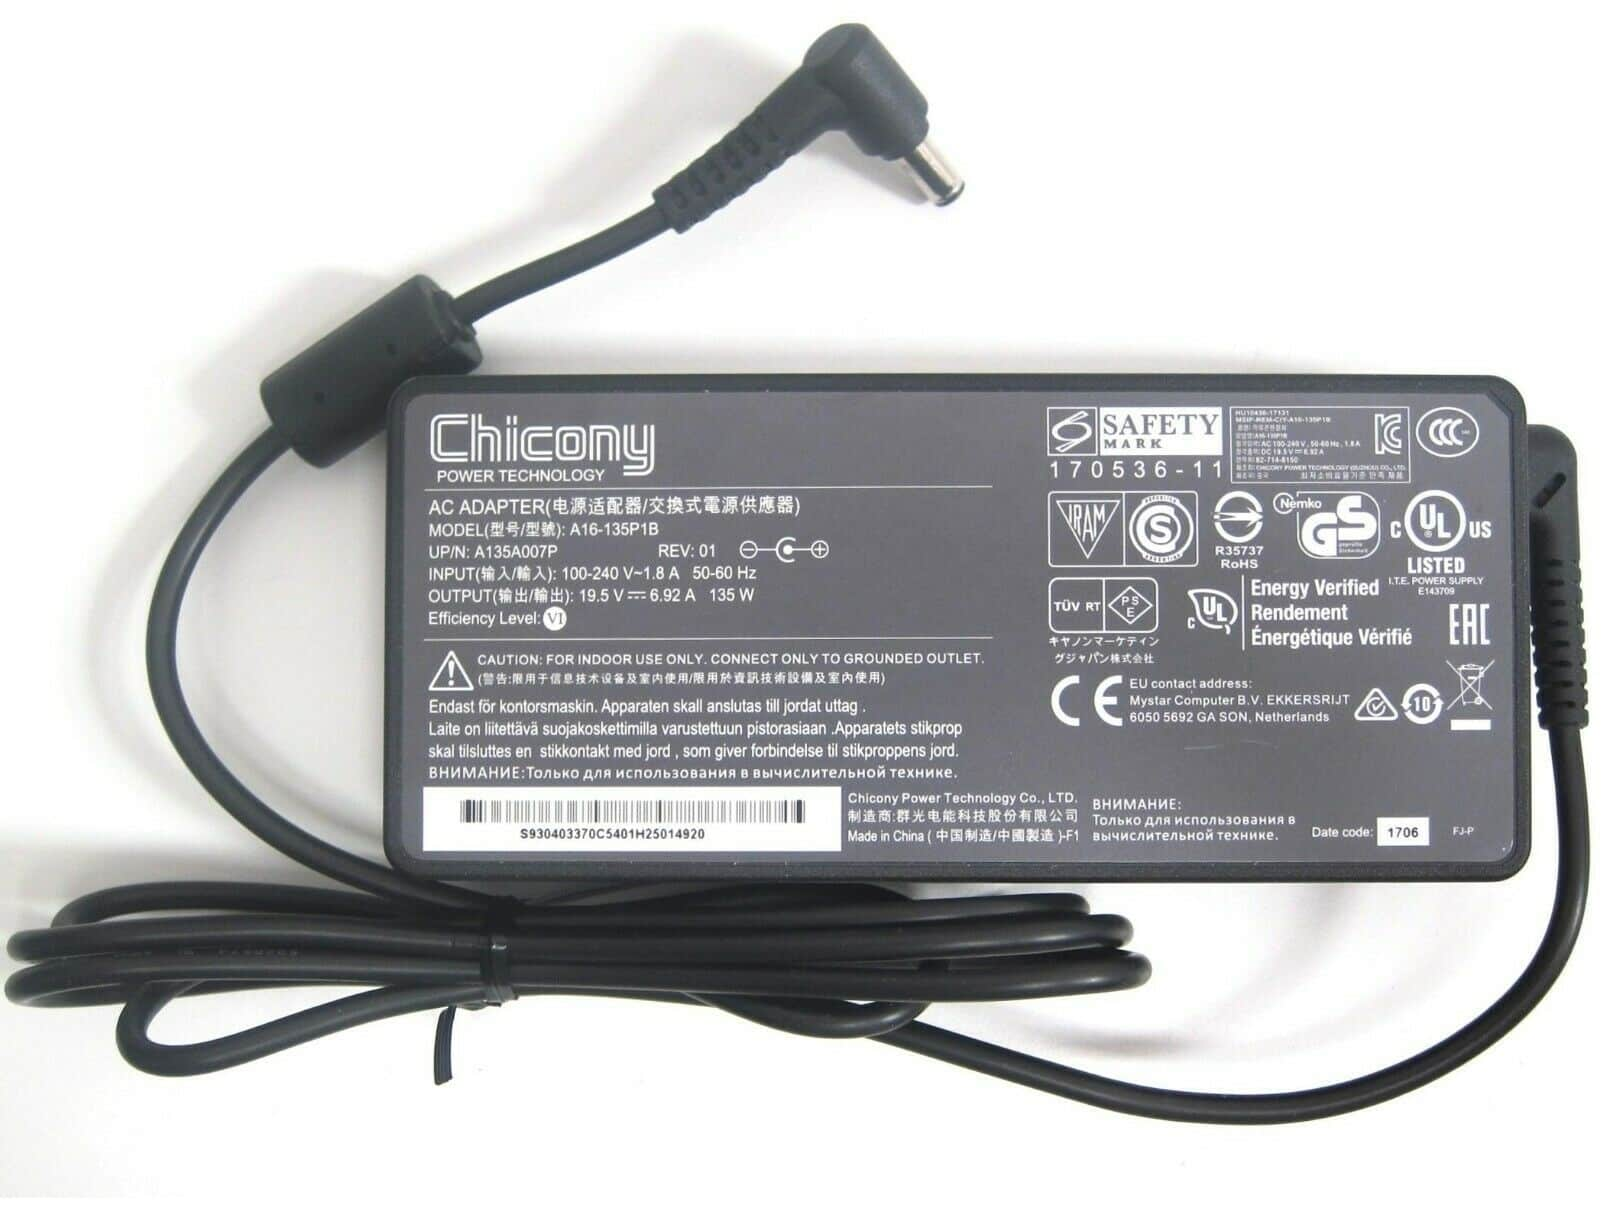 [SG Seller] Original Chicony 19.5V 6.92A 135W (5.5*2.5MM) A16-135P1B Power Supply Laptop AC Adapter/ Charger Compatible with MSI GL62M, GL72, GL72M, GP62, GP62MX, GP62X, MS-16J9, MS-16J51, ADP-150NB D, ADP-150VB B, 957-16H21P-004 - Singapore Safety Mark